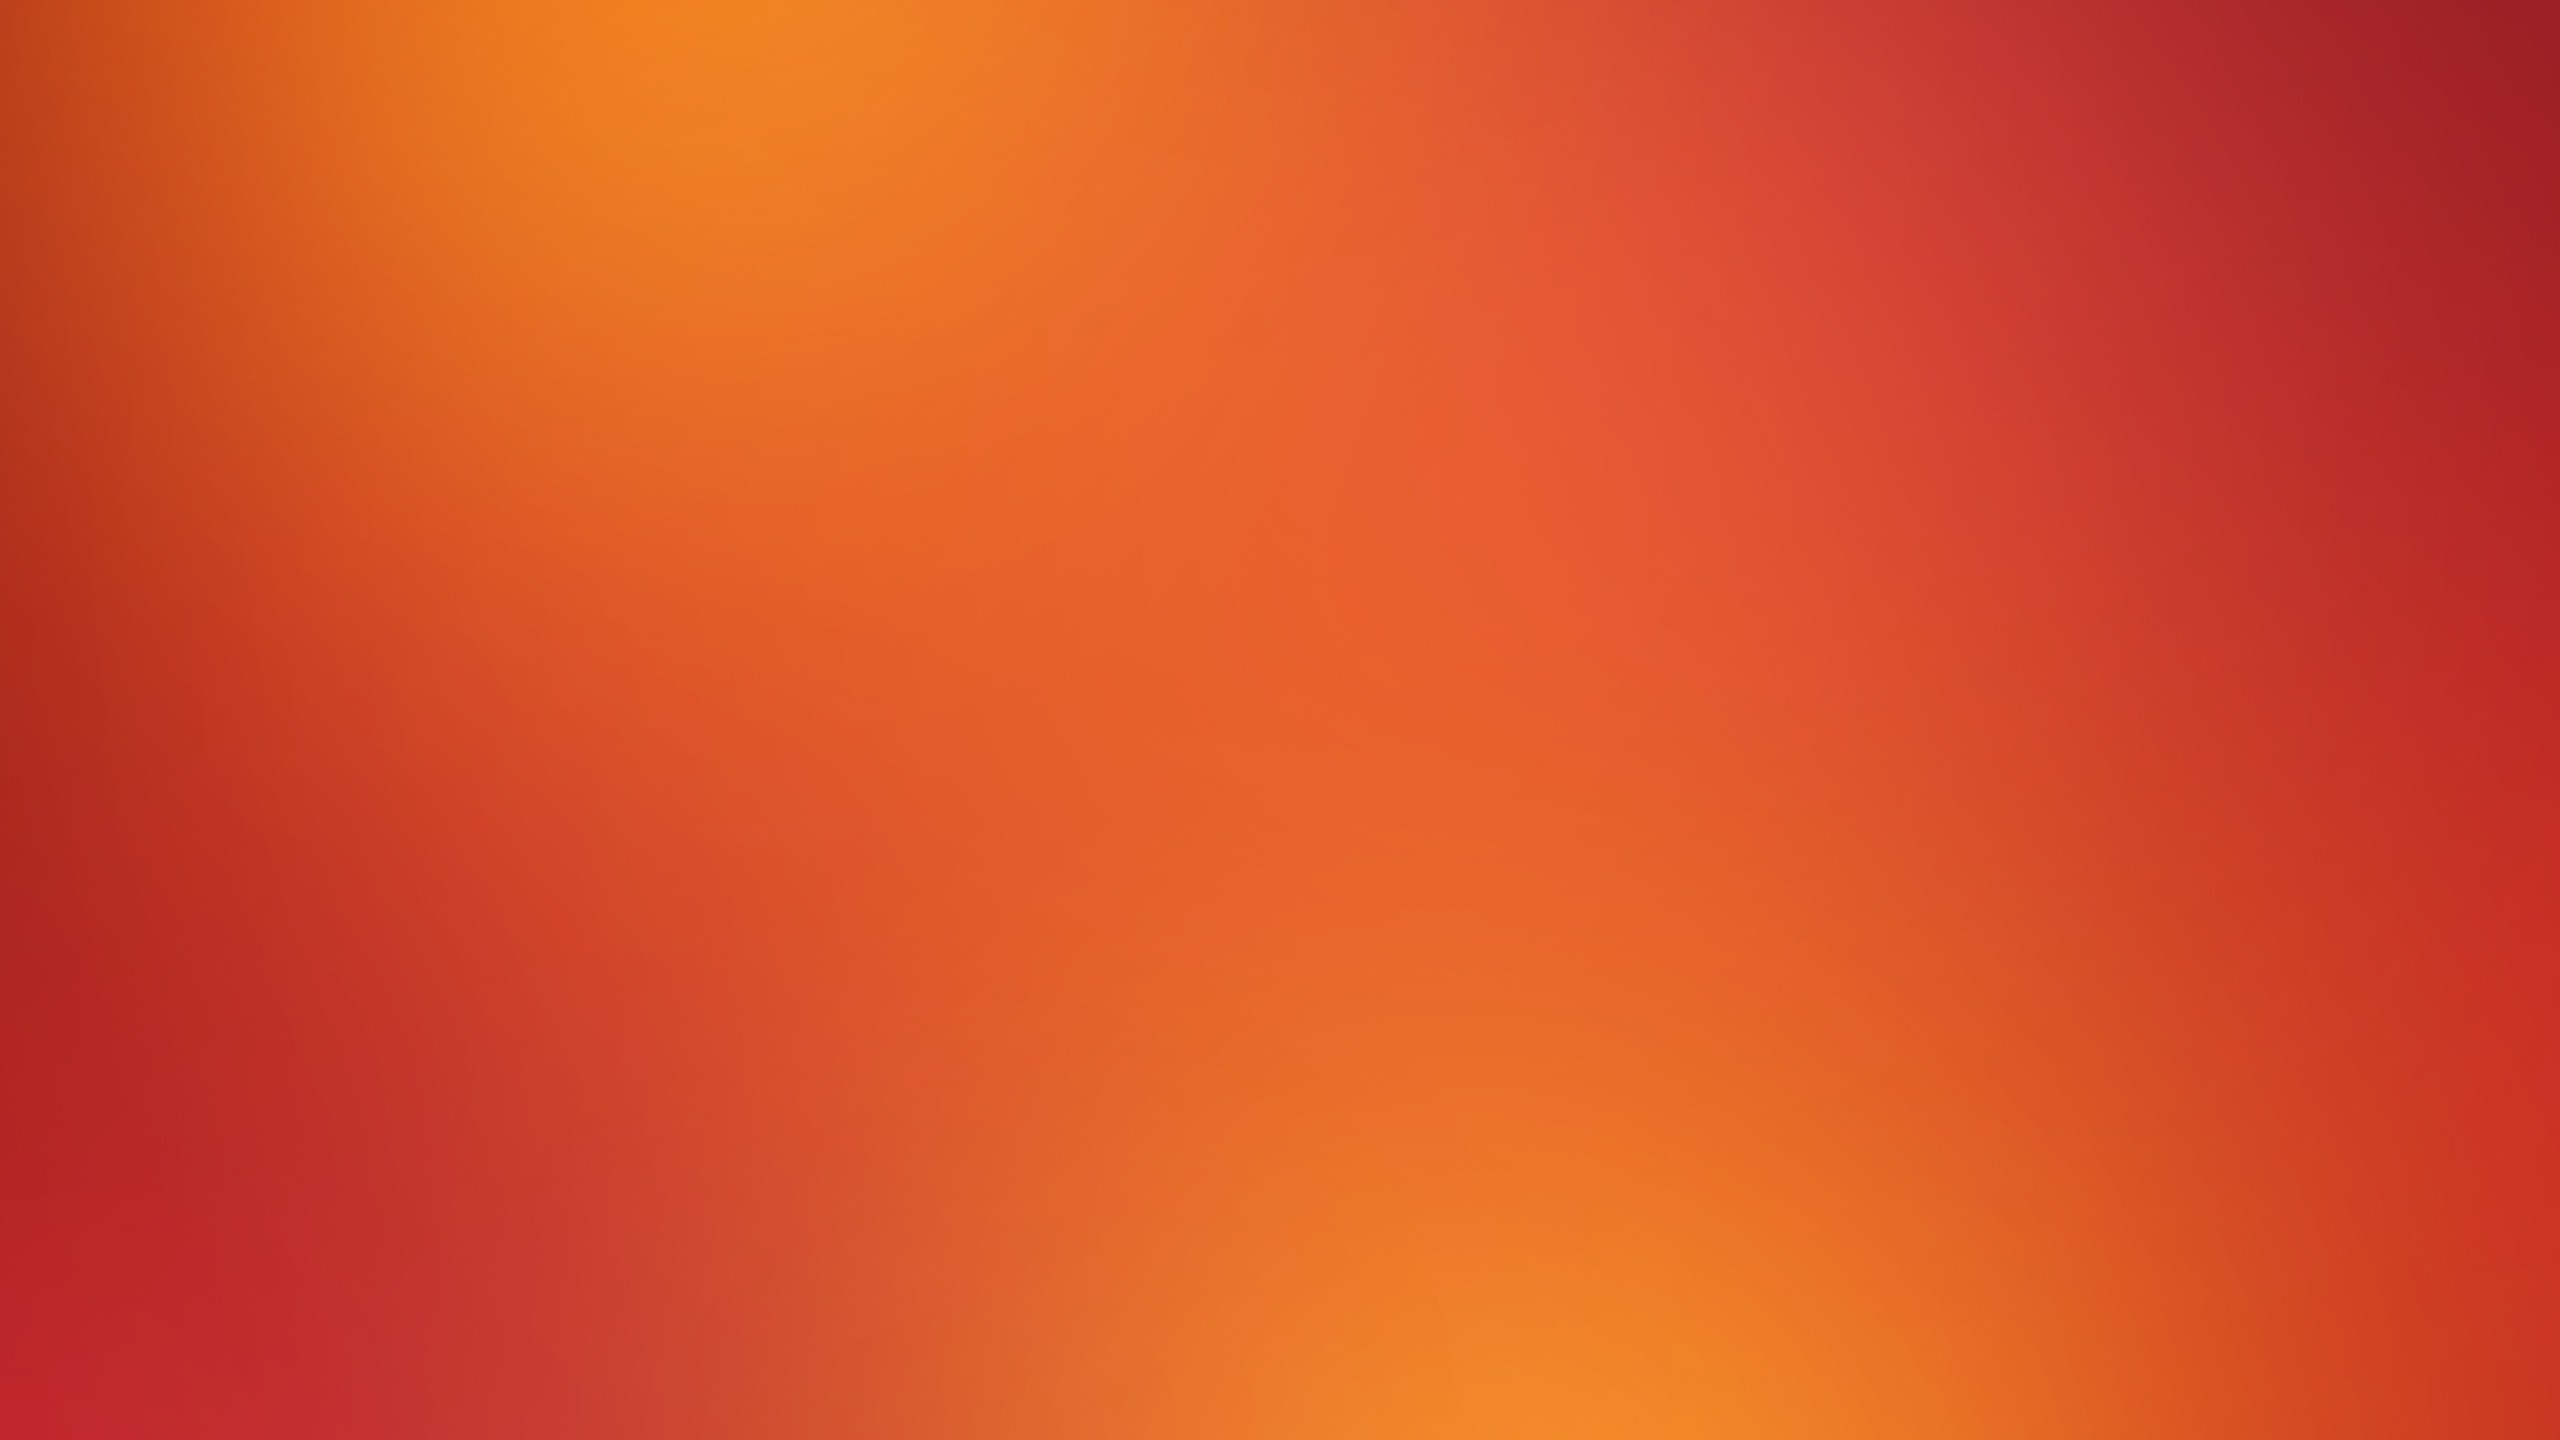 2560x1440 Minimalistic multicolor orange deviantart textures windows